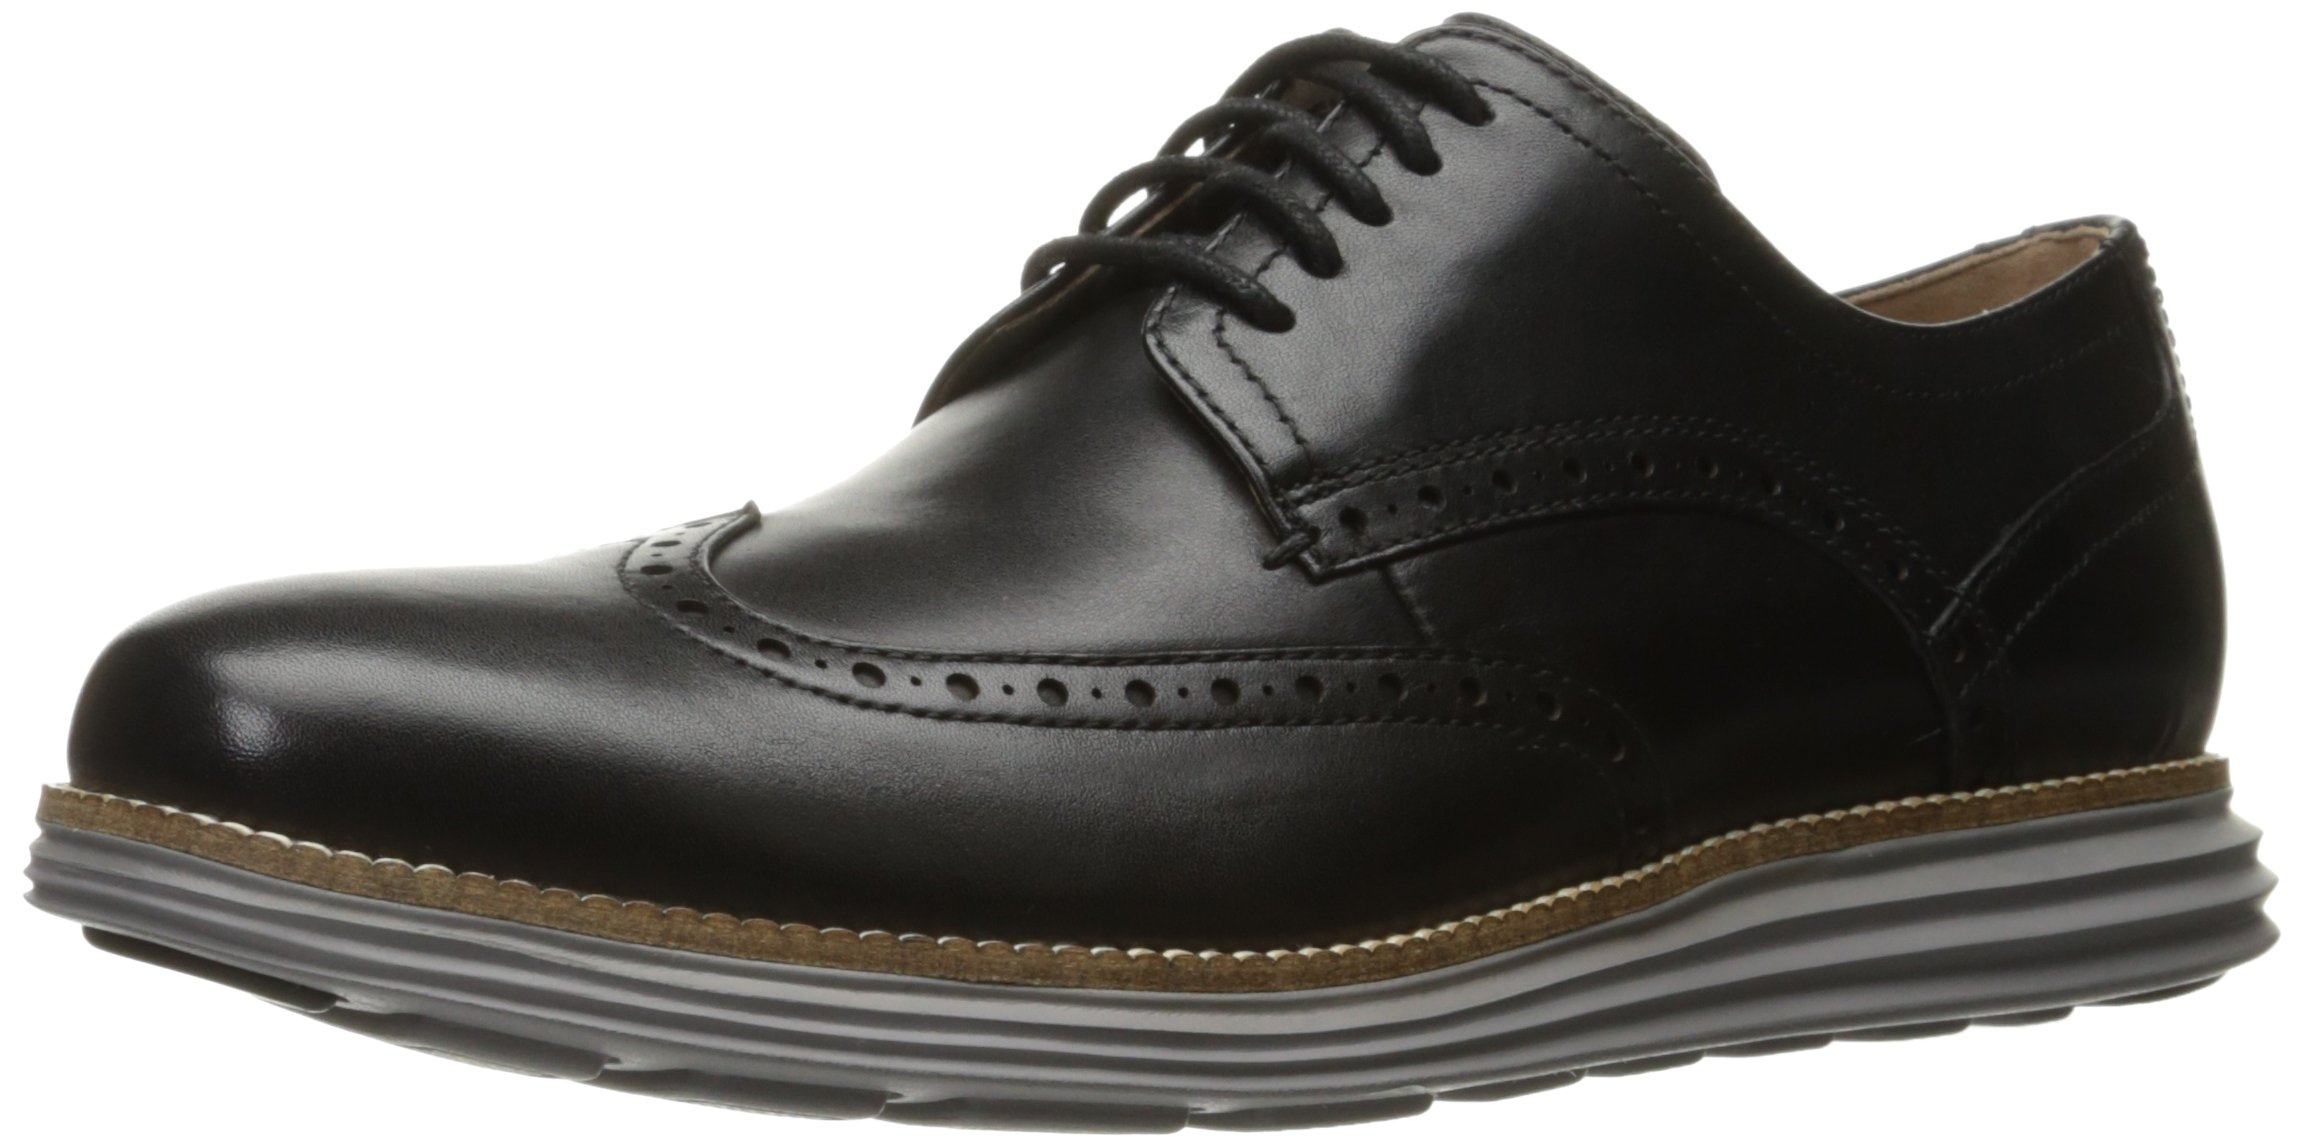 Cole Haan Men's Original Grand Shortwing Oxford Shoe, Black Leather/Ironstone, 10.5 Medium US